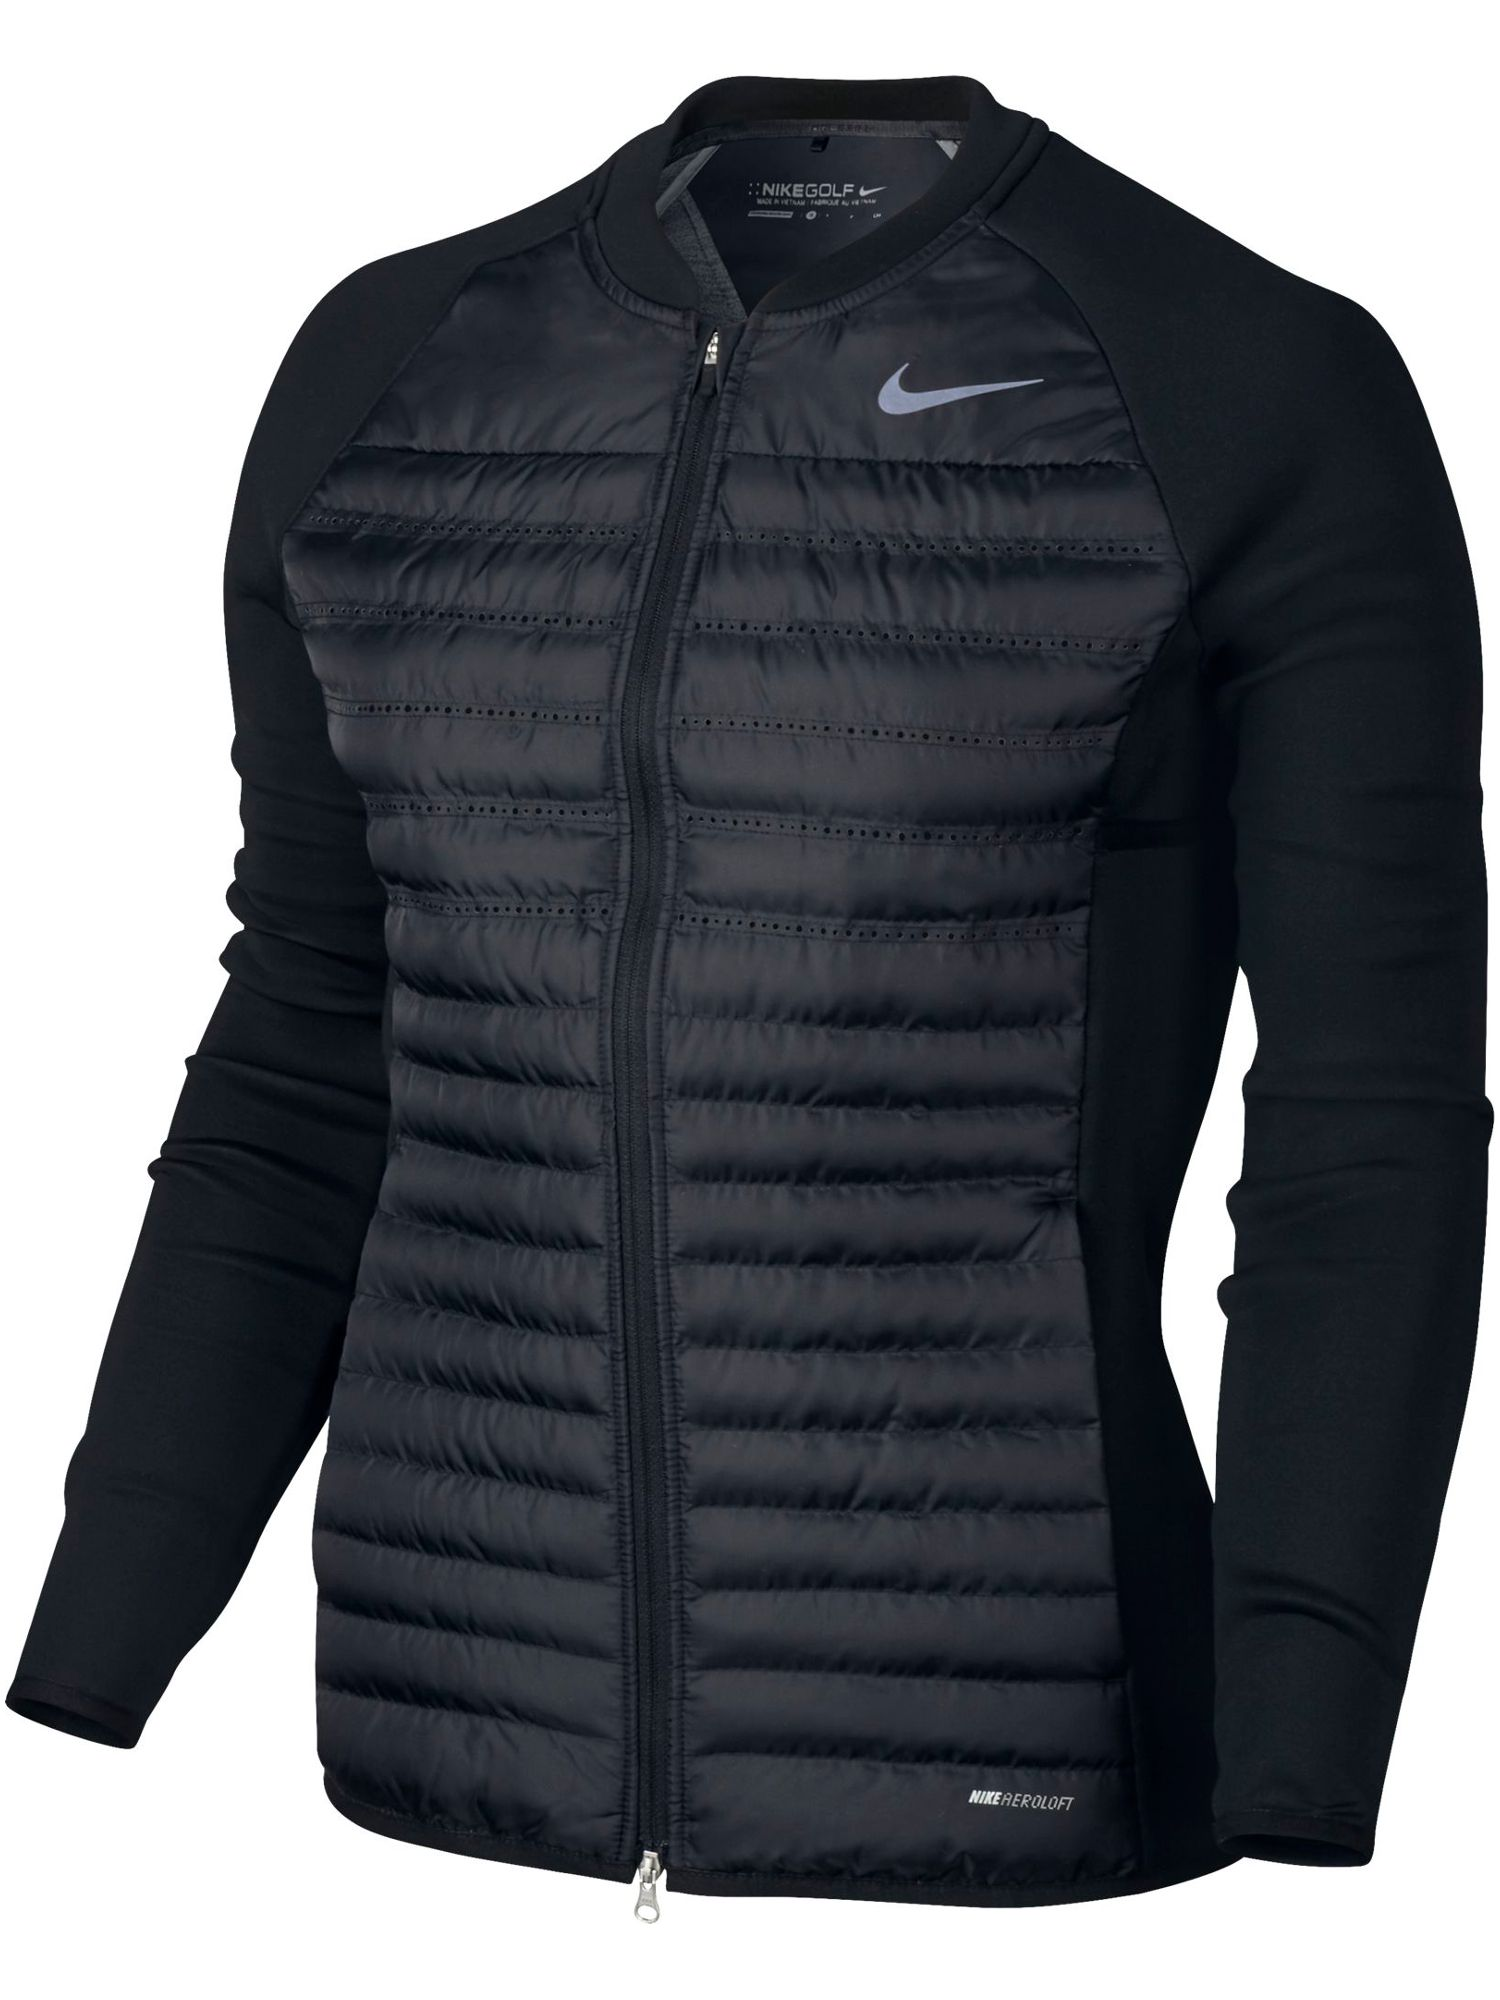 Nike Golf Aeroloft Combo Golf Jacket, Black